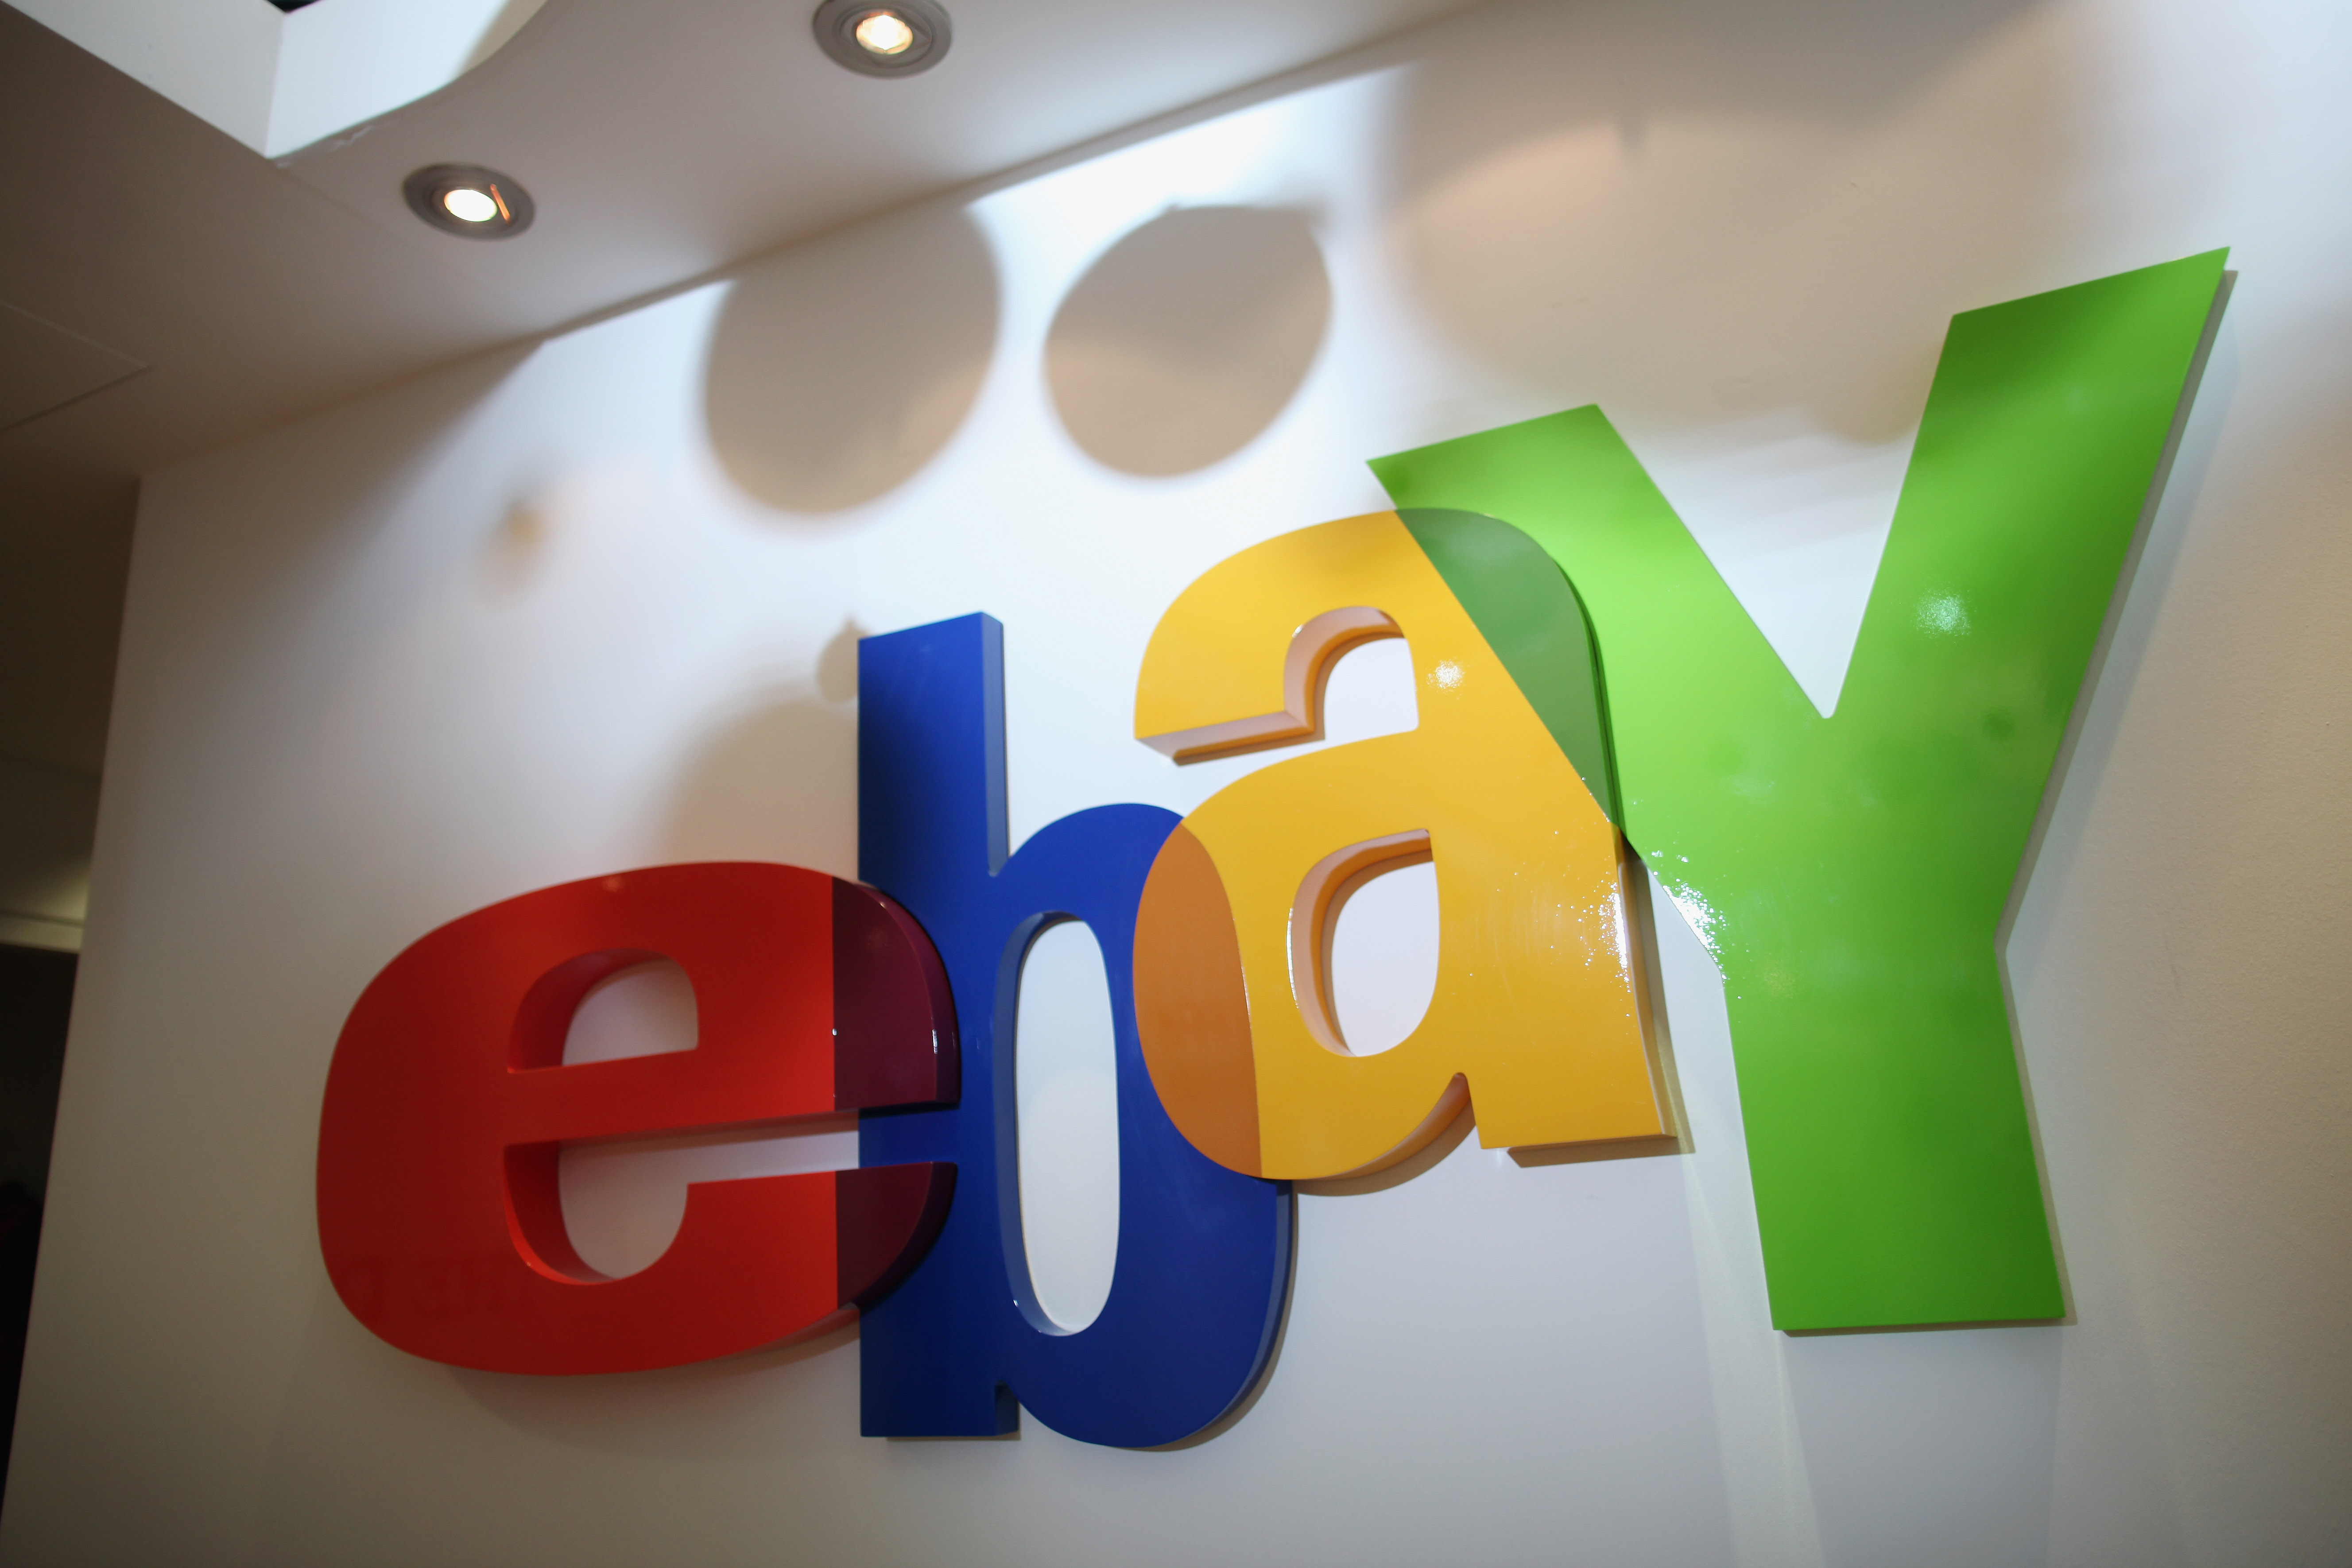 eBay announces Spanish and Portuguese versions for Latin America